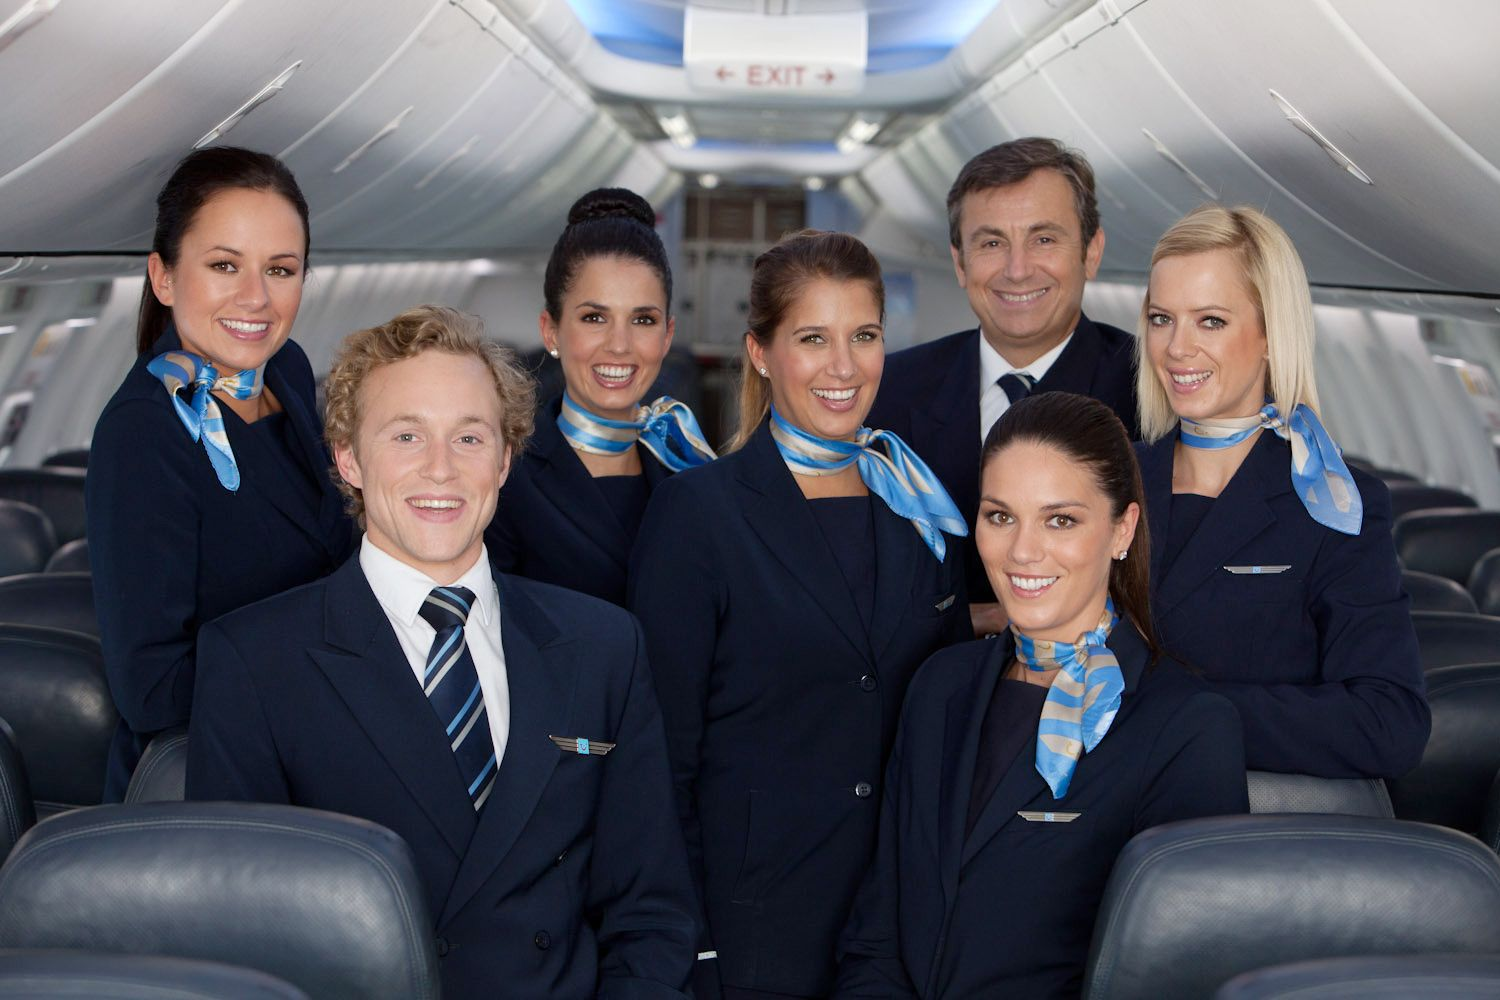 Jetairfly Crew Uniforms Fly Tom Pinterest